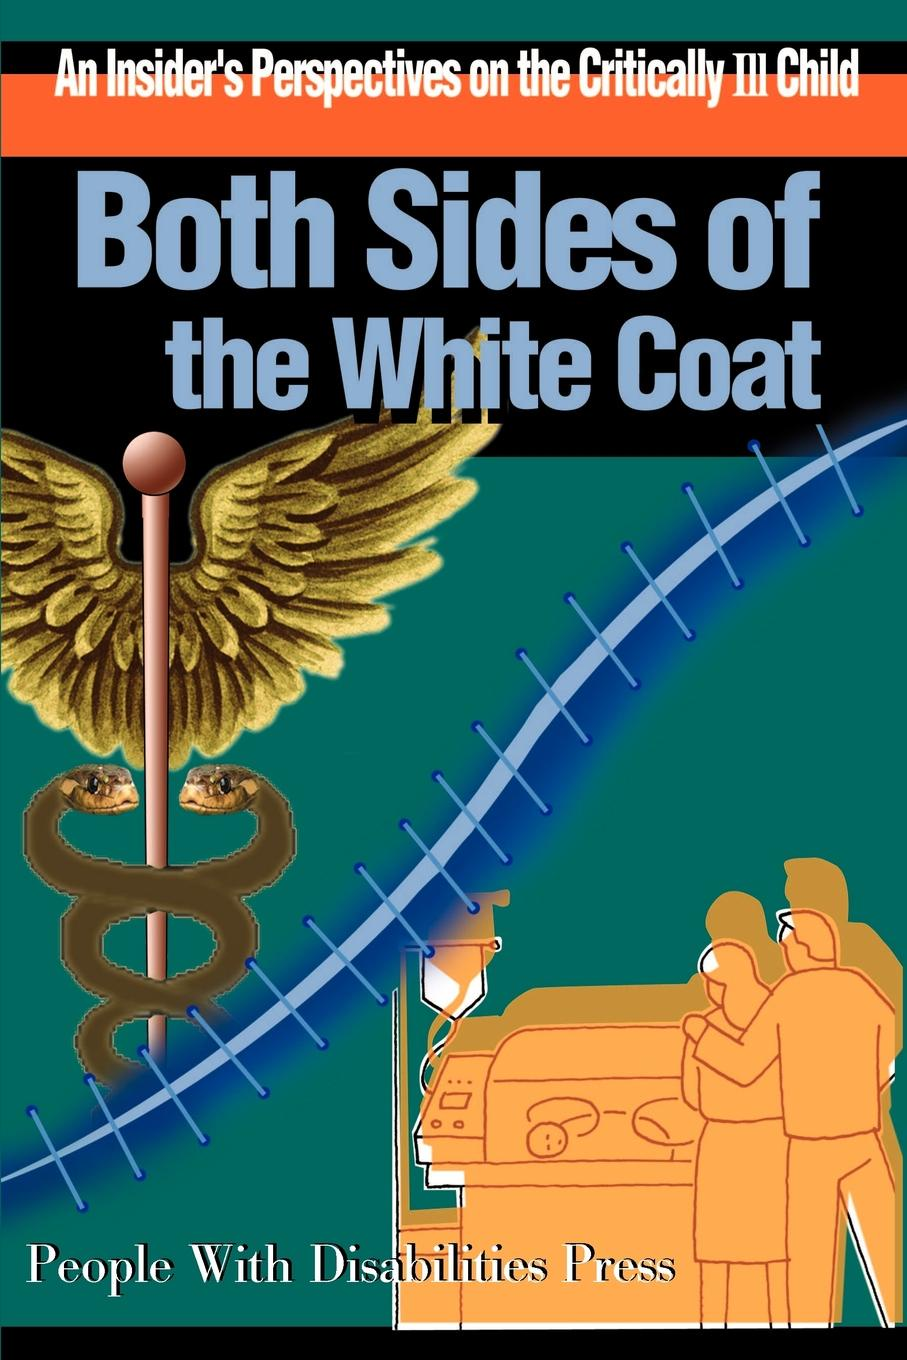 Scott E. Eveloff Both Sides of the White Coat. An Insider's Perspectives on the Critically Ill Child both sides worn pocket zipper front coat